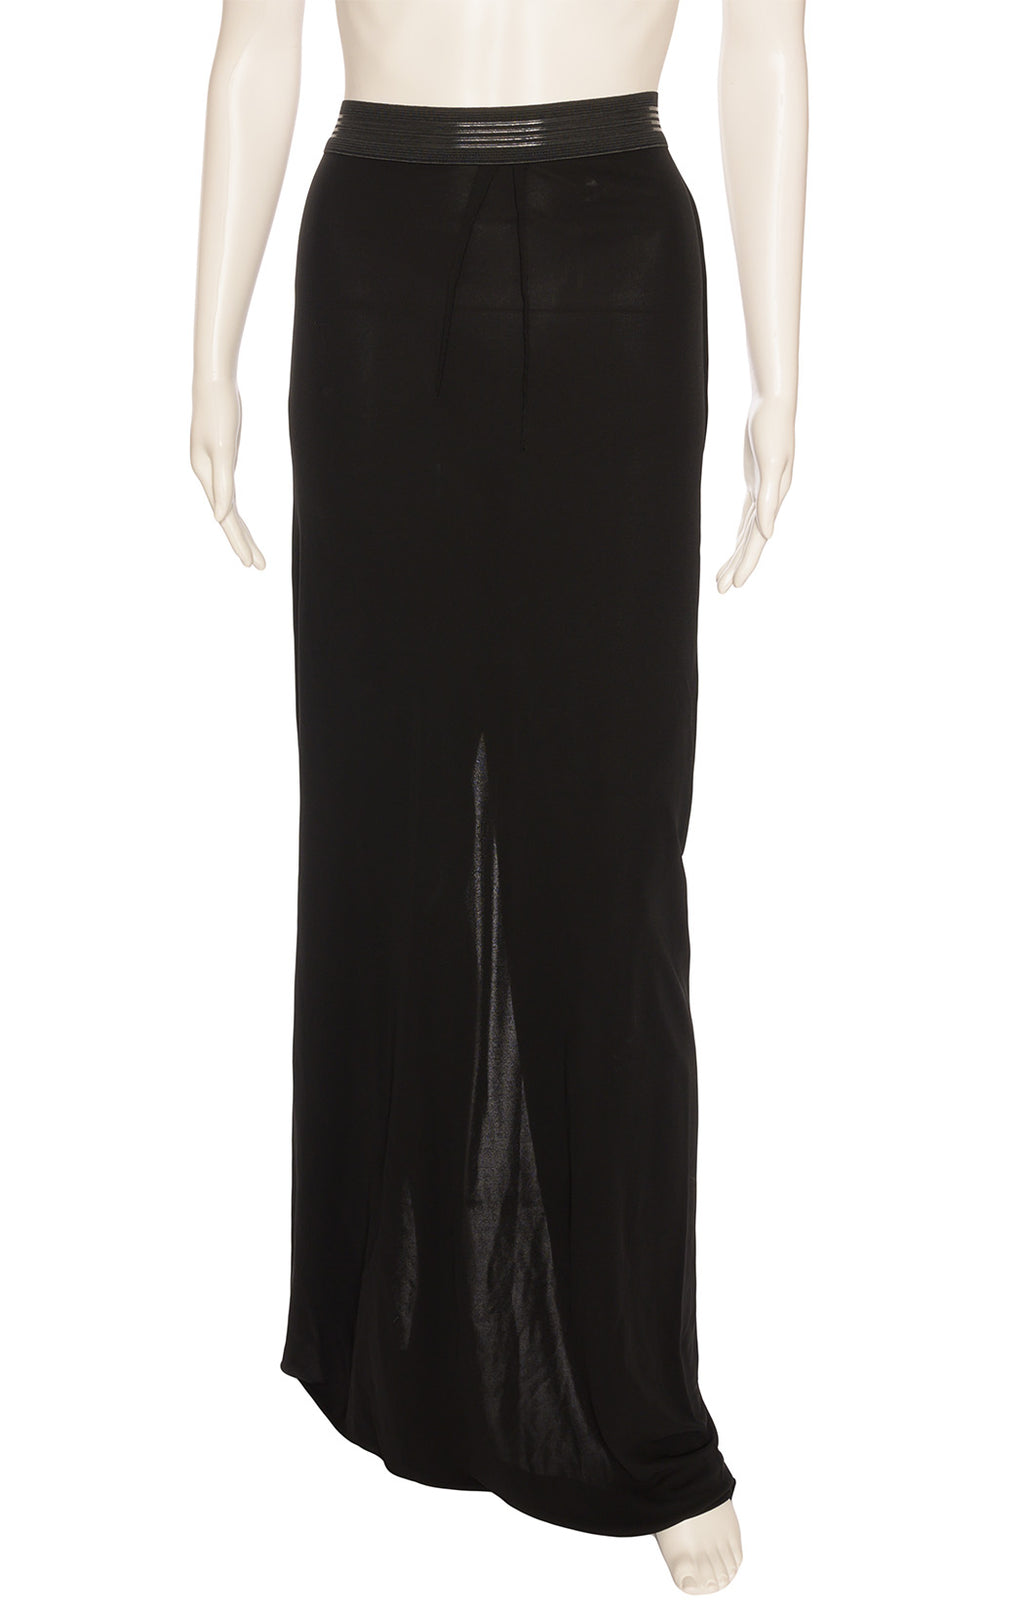 Black long skirt with rubber like waistband and back zipper with high back slit